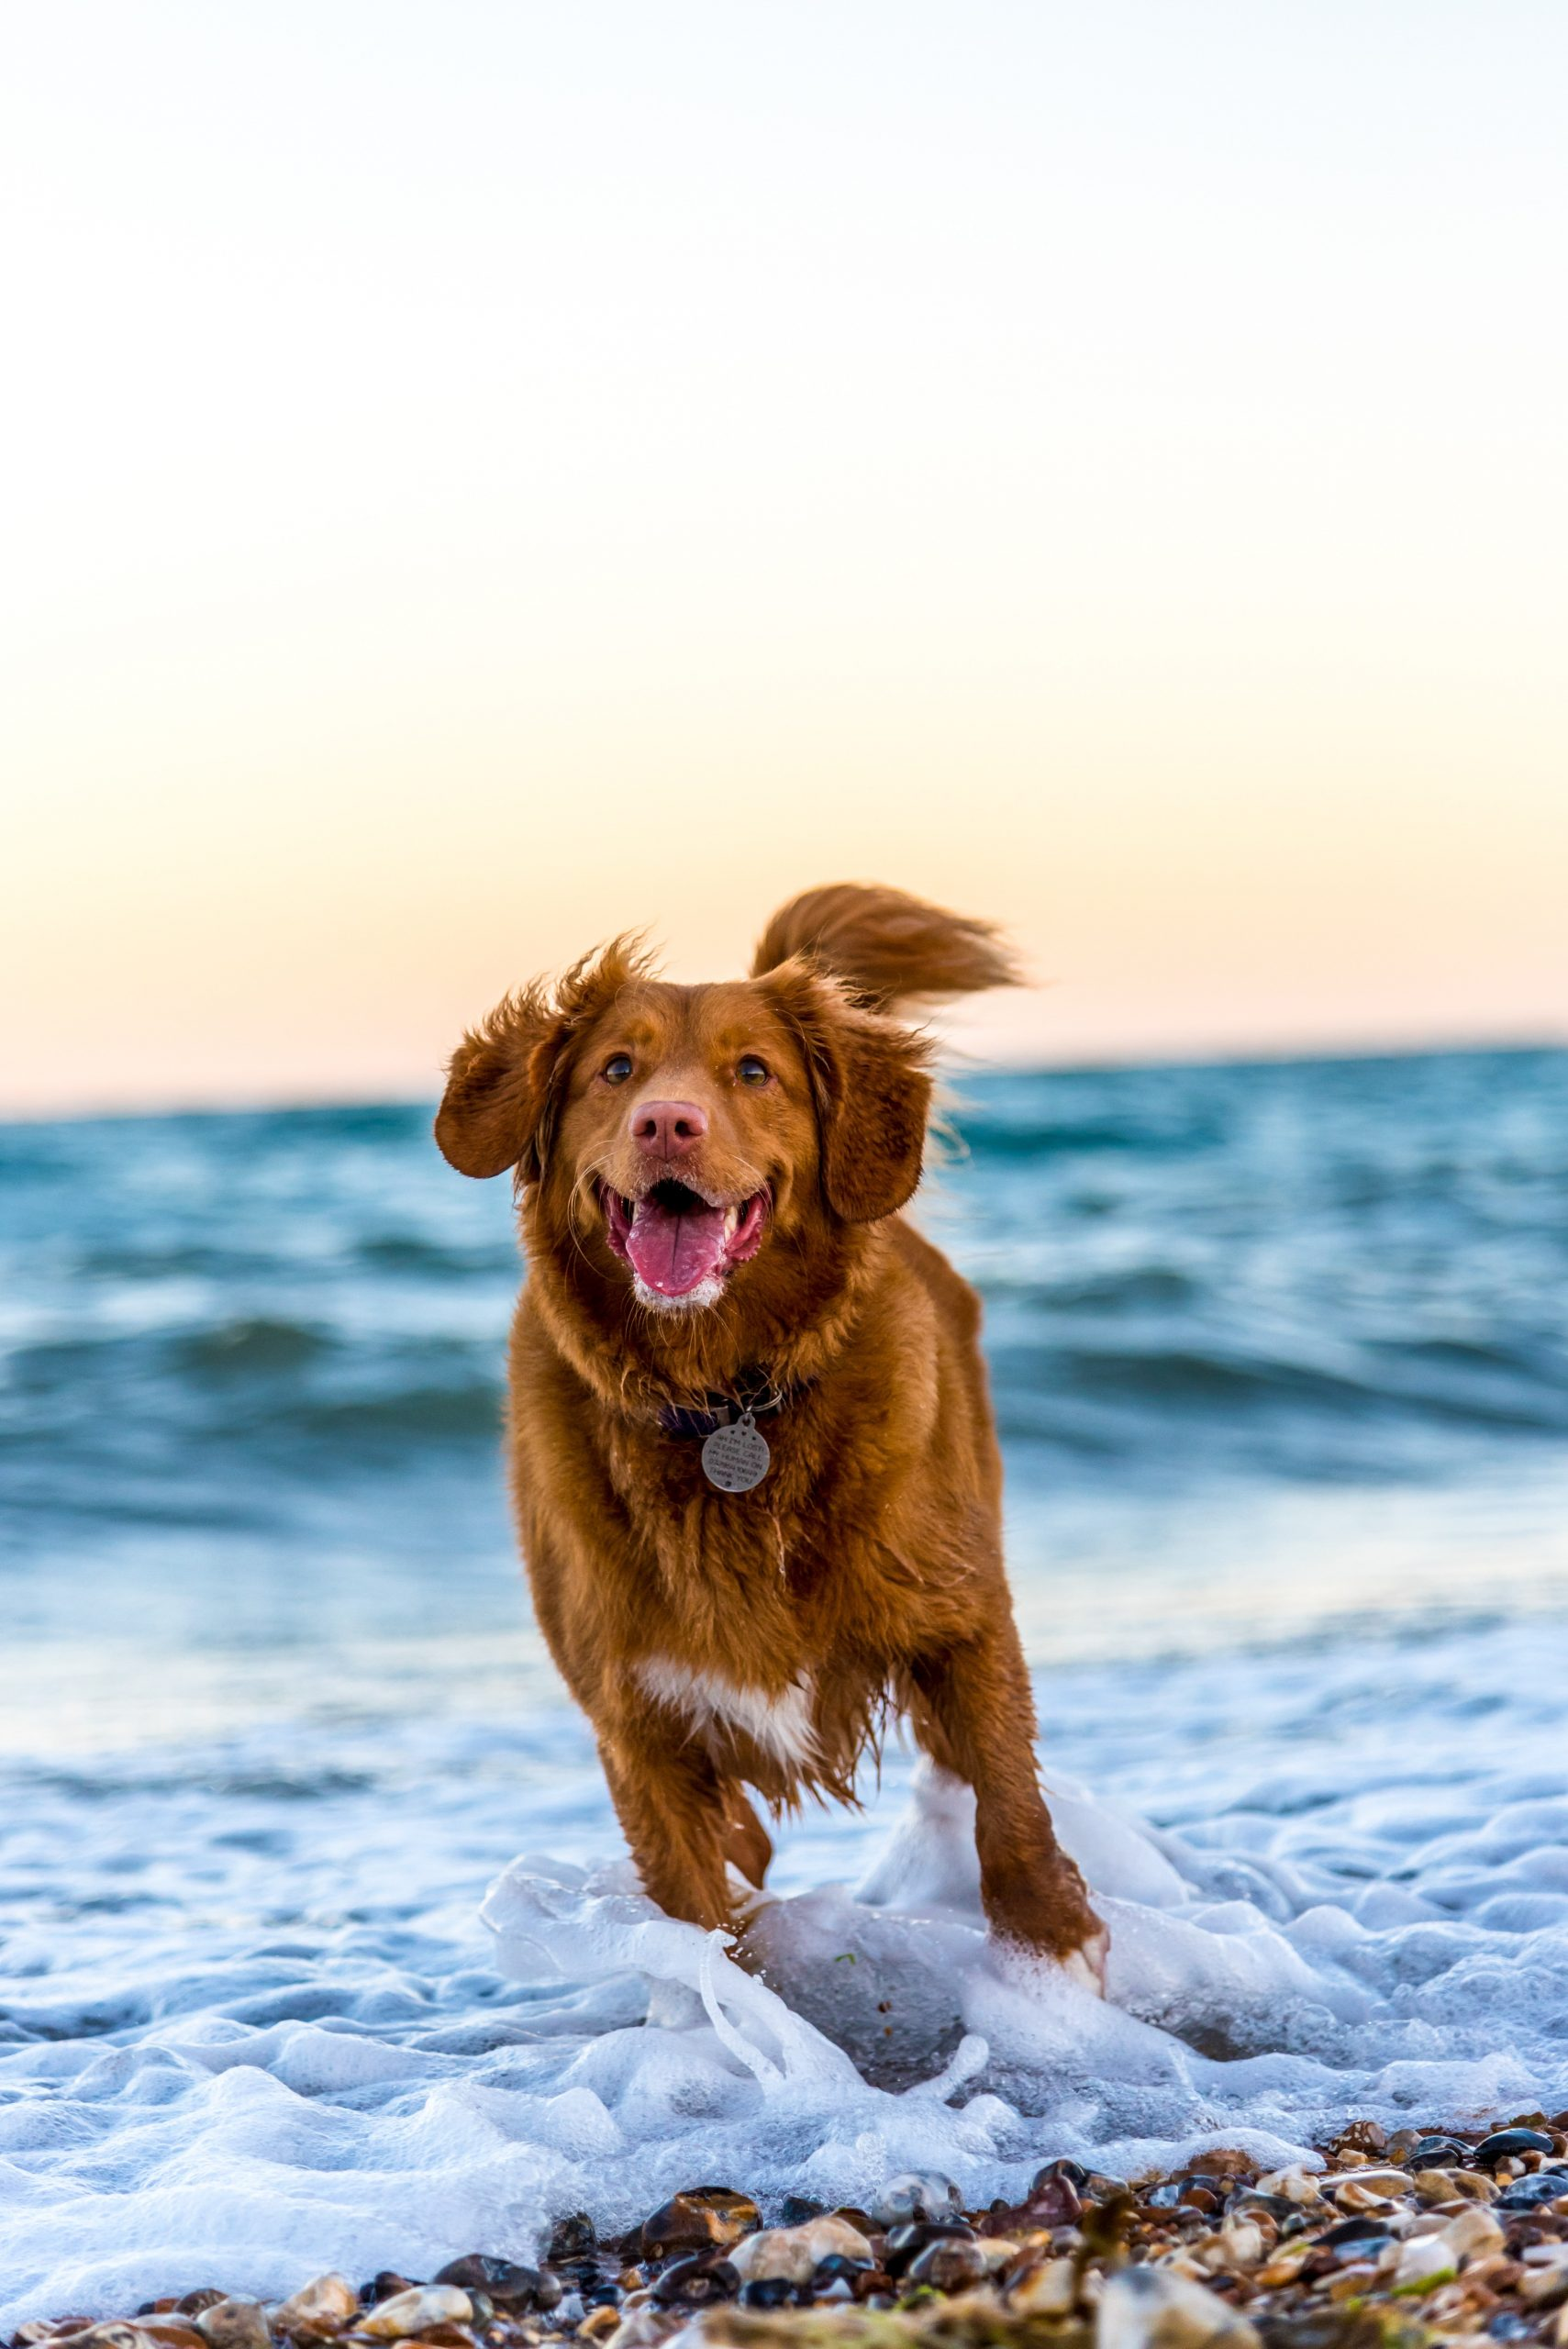 10 Ways to Make Your Dog Happy